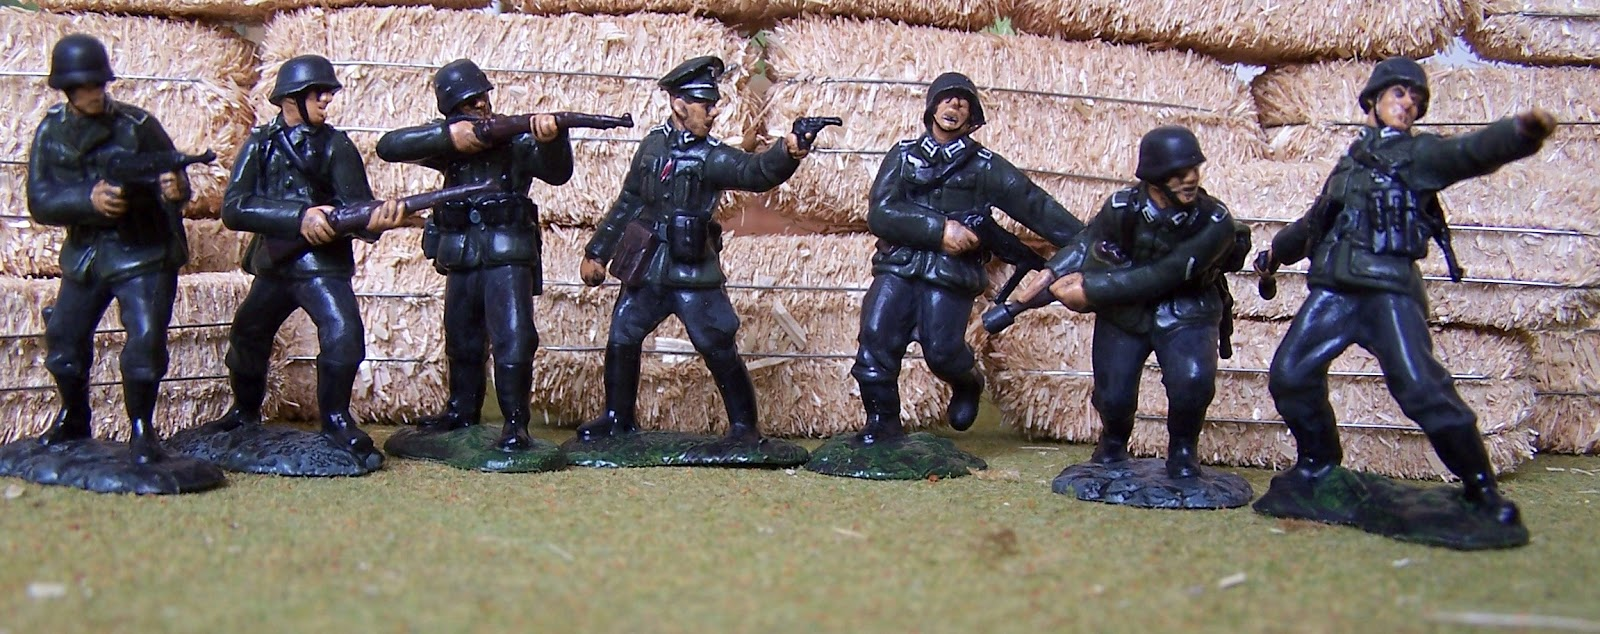 WWII Plastic Toy Soldiers: Conte Collectibles - Toy Soldiers